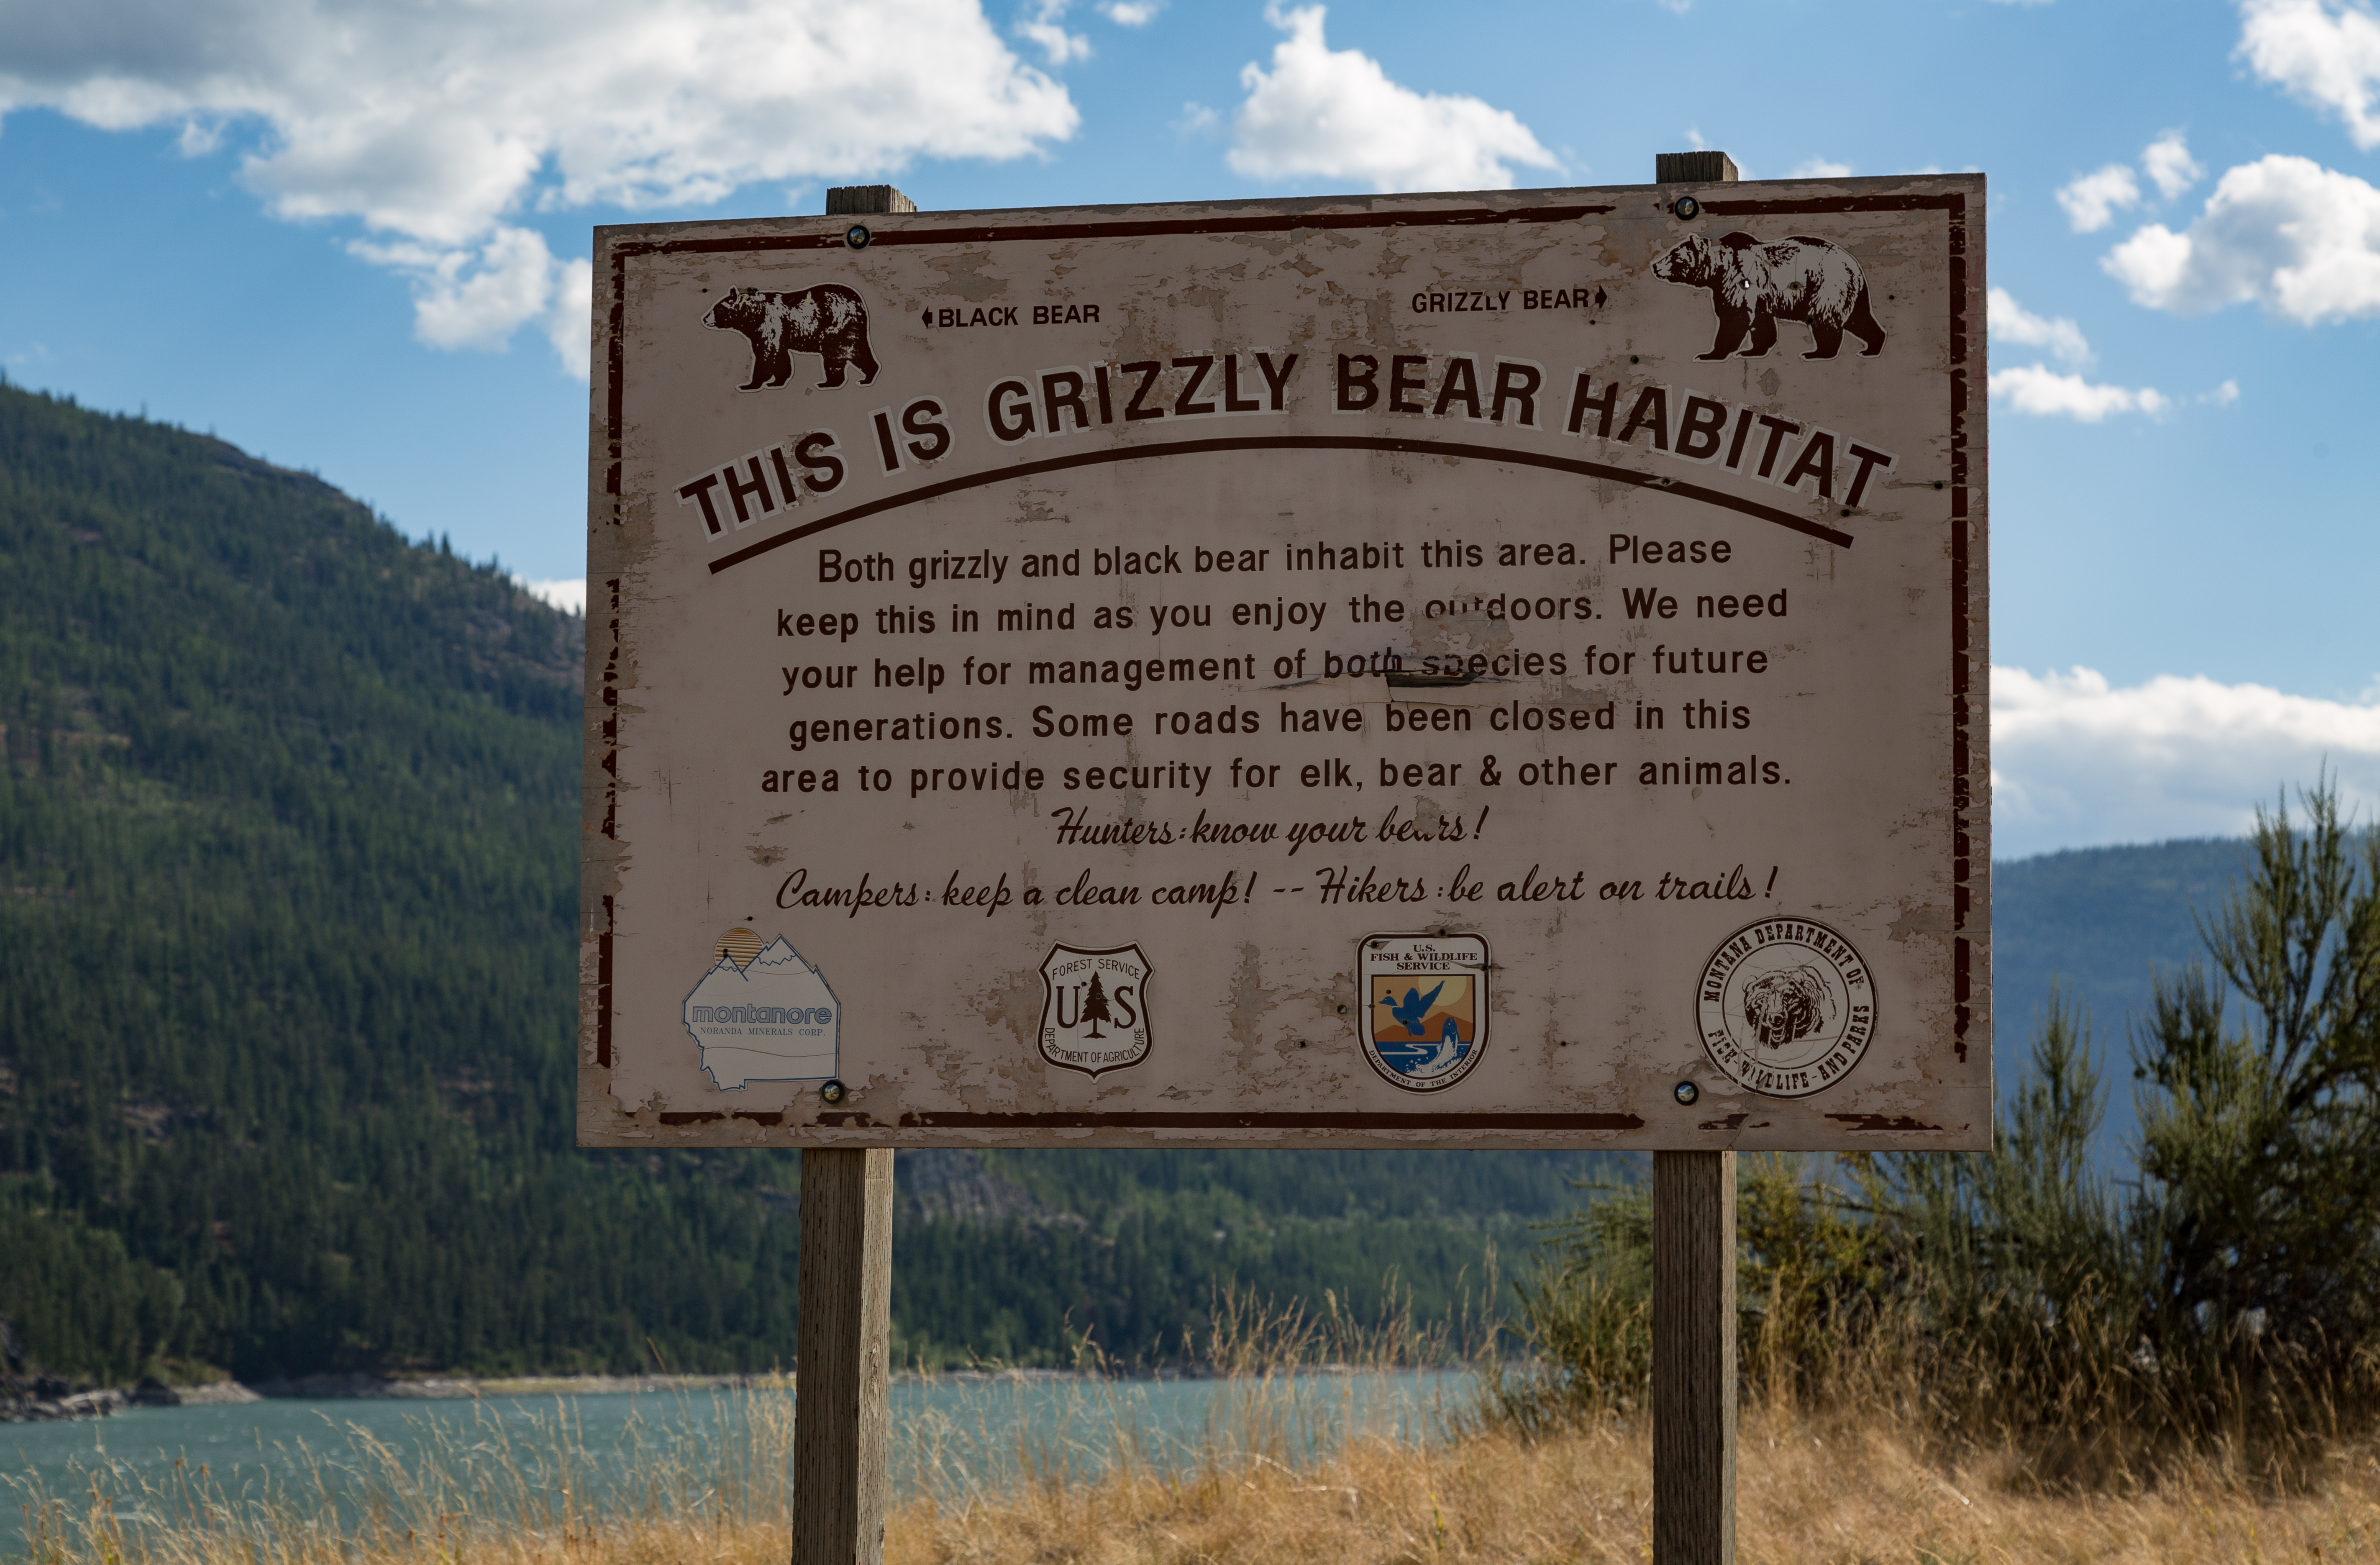 File:This is Grizzly Bear Habitat Sign Kootenai National